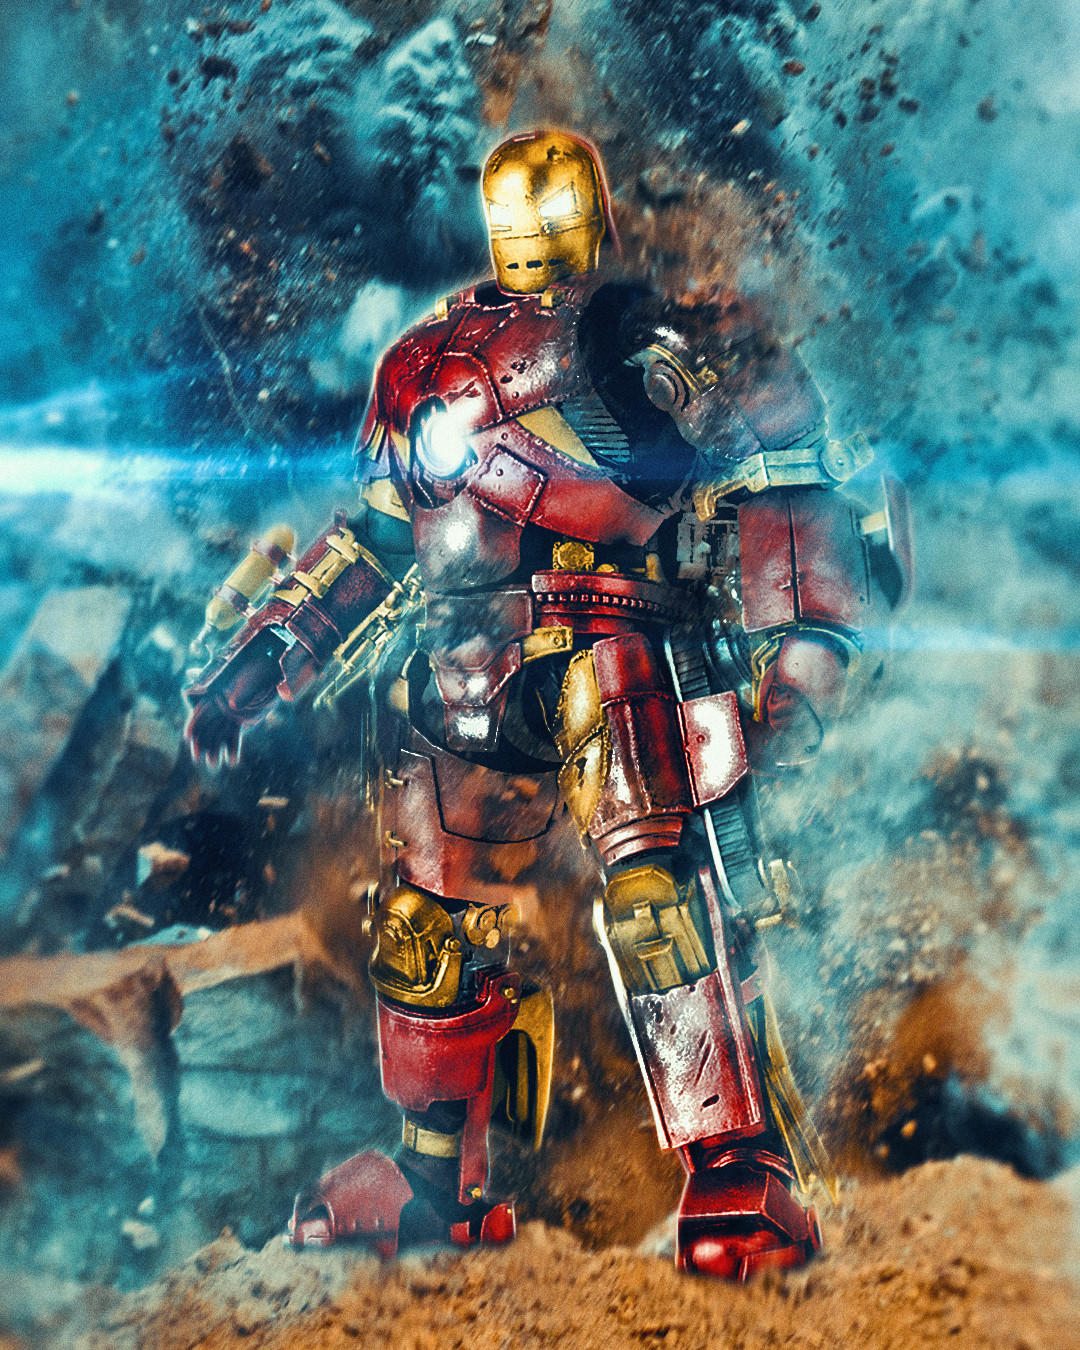 Nick tam masaolab ironman originalsuit v2